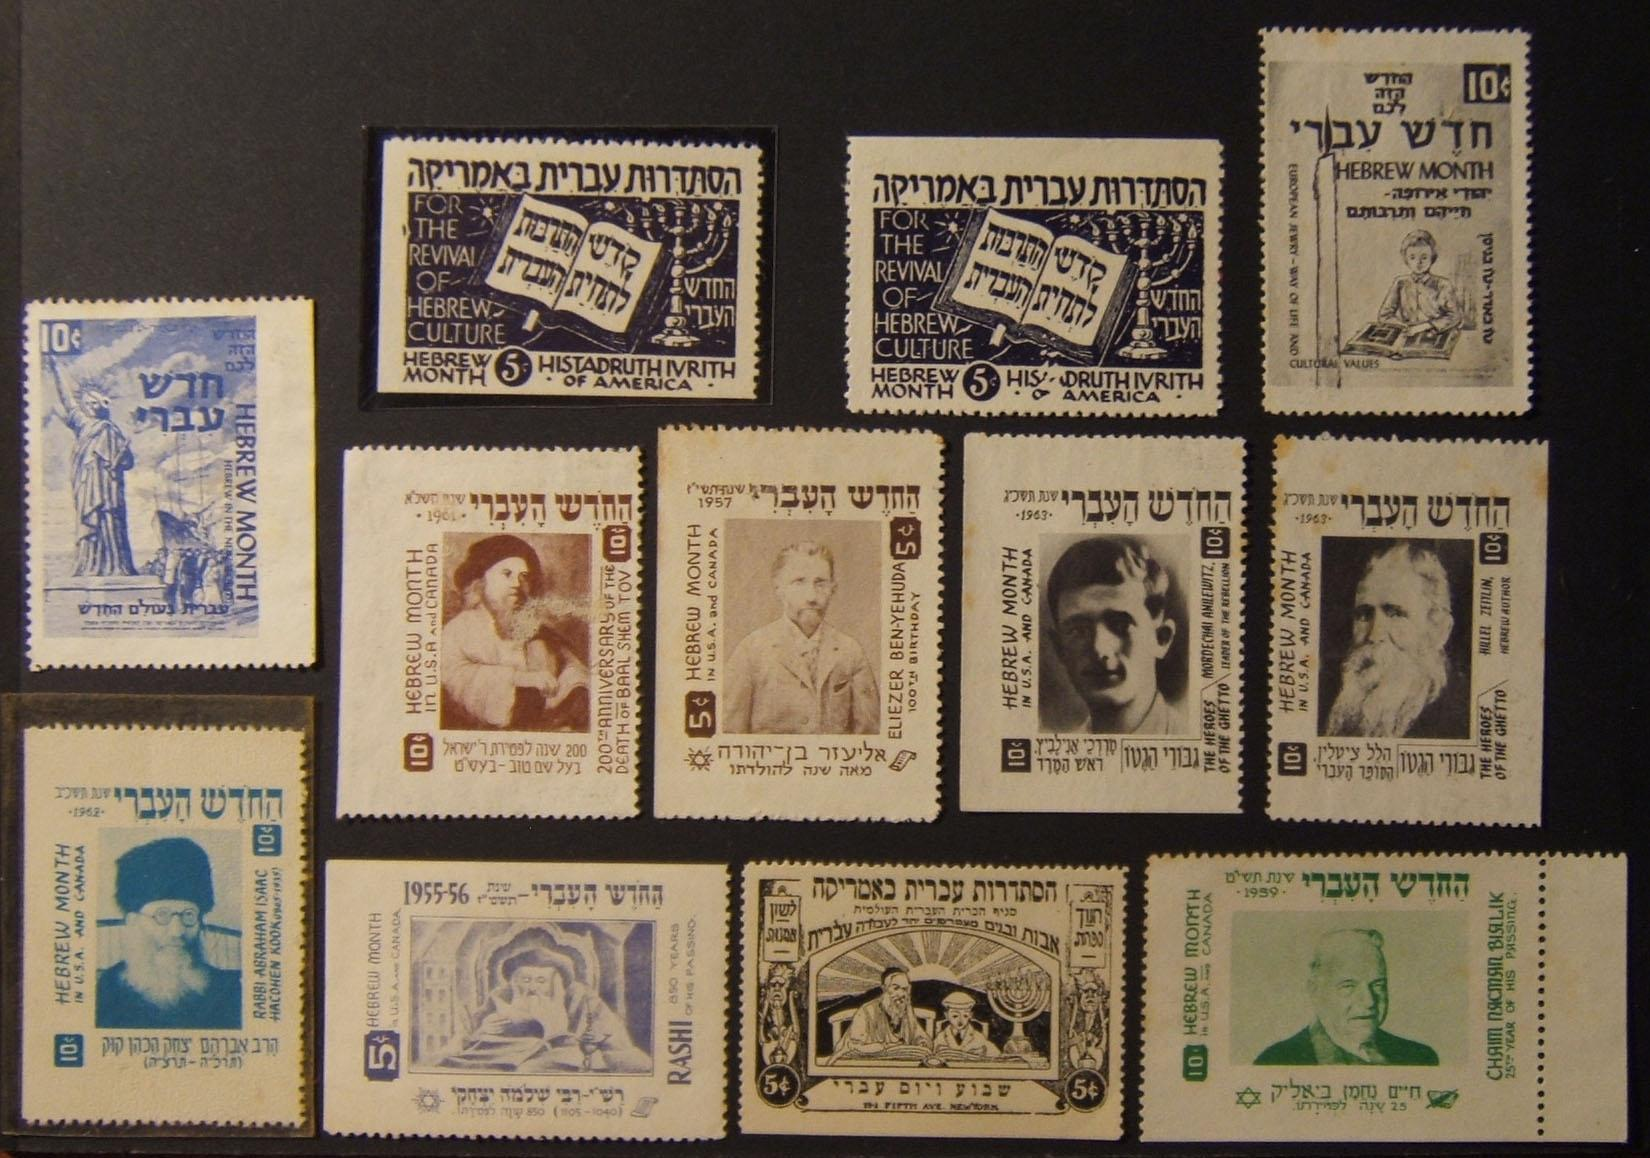 US: 'Hebrew Month' x12 labels, various dates 1950's-1960's